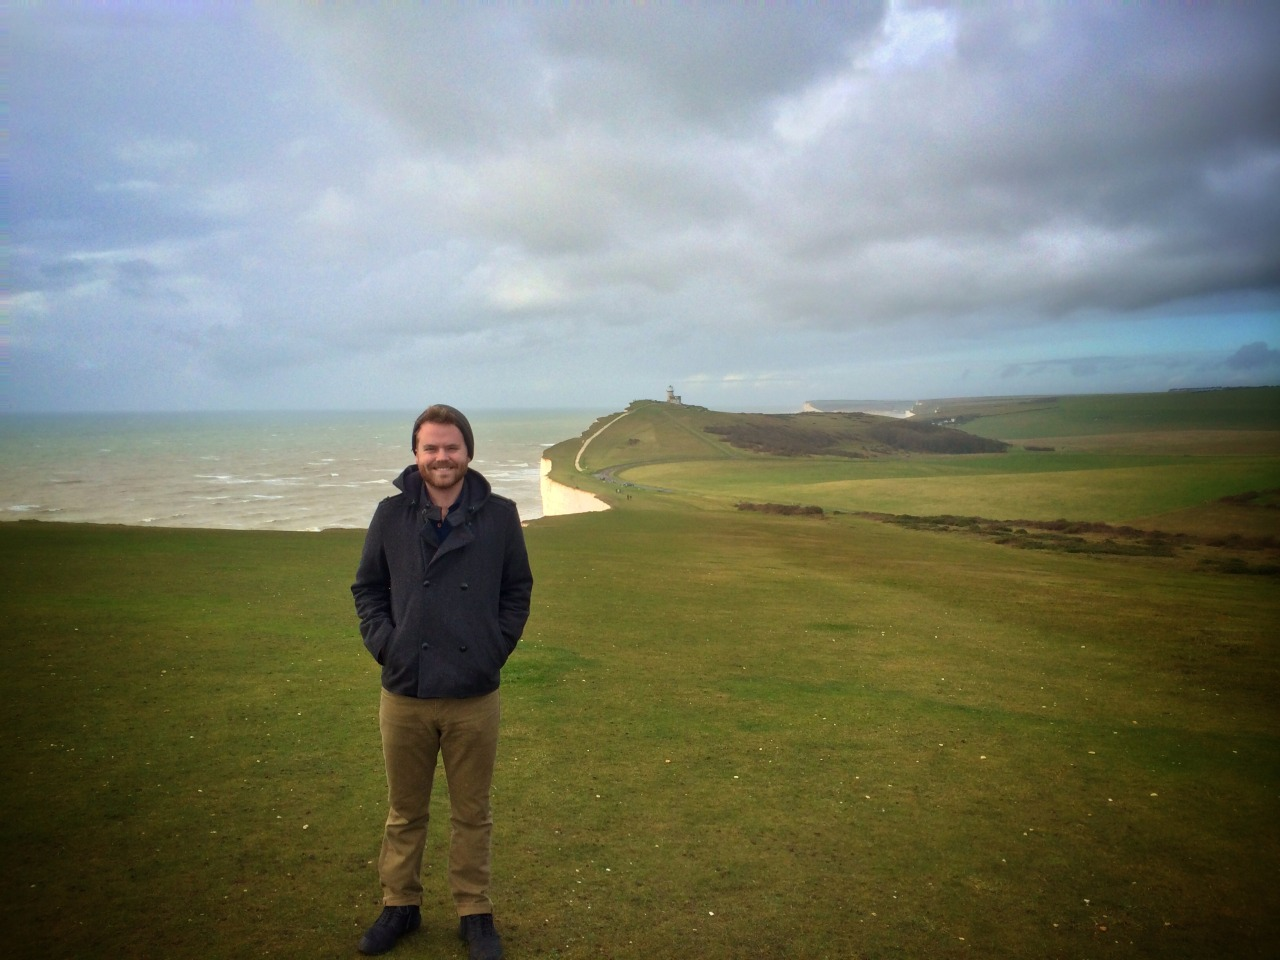 Cheezin' on the cliffs of Beachy Head